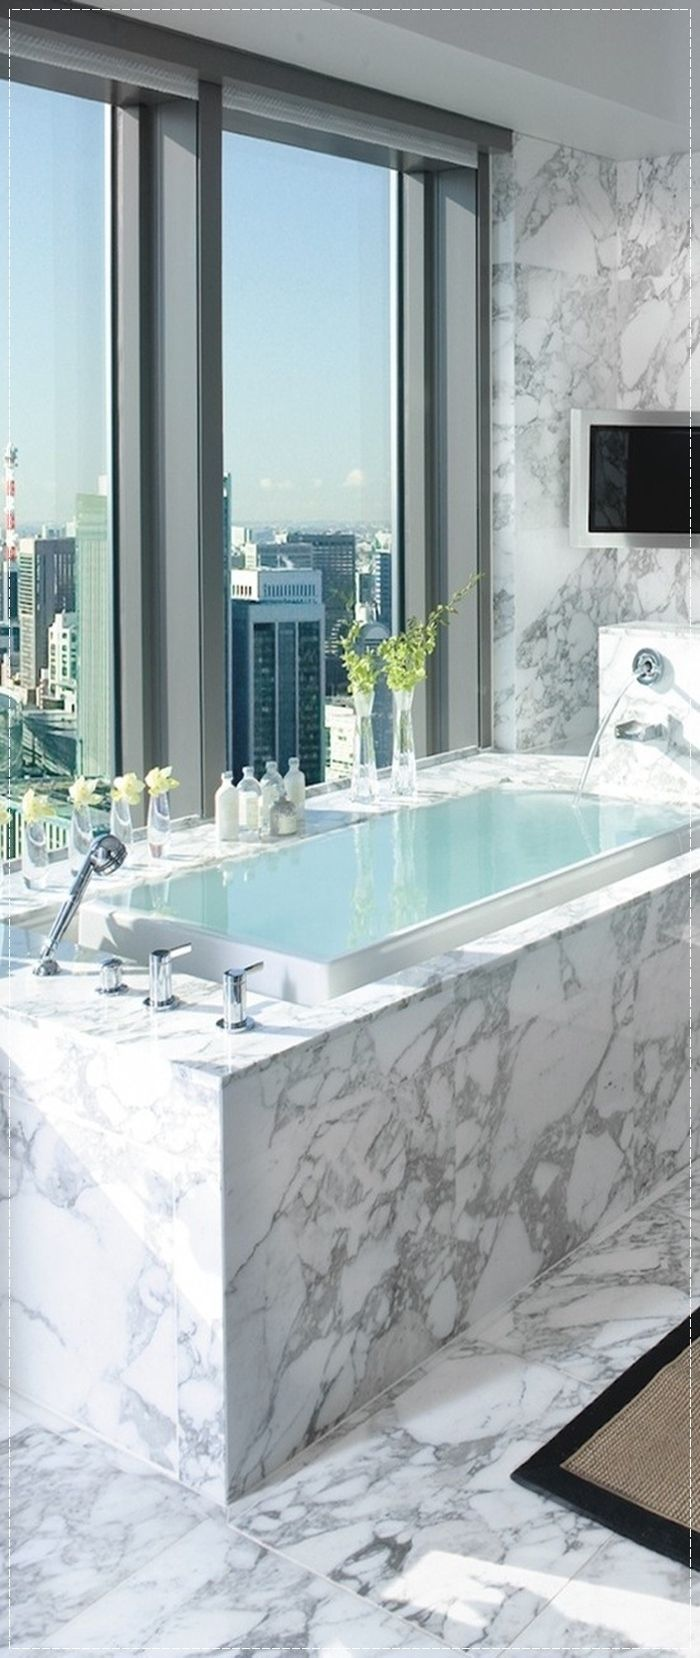 Marble bathroom with a view.  Repinned by Lapicida.com